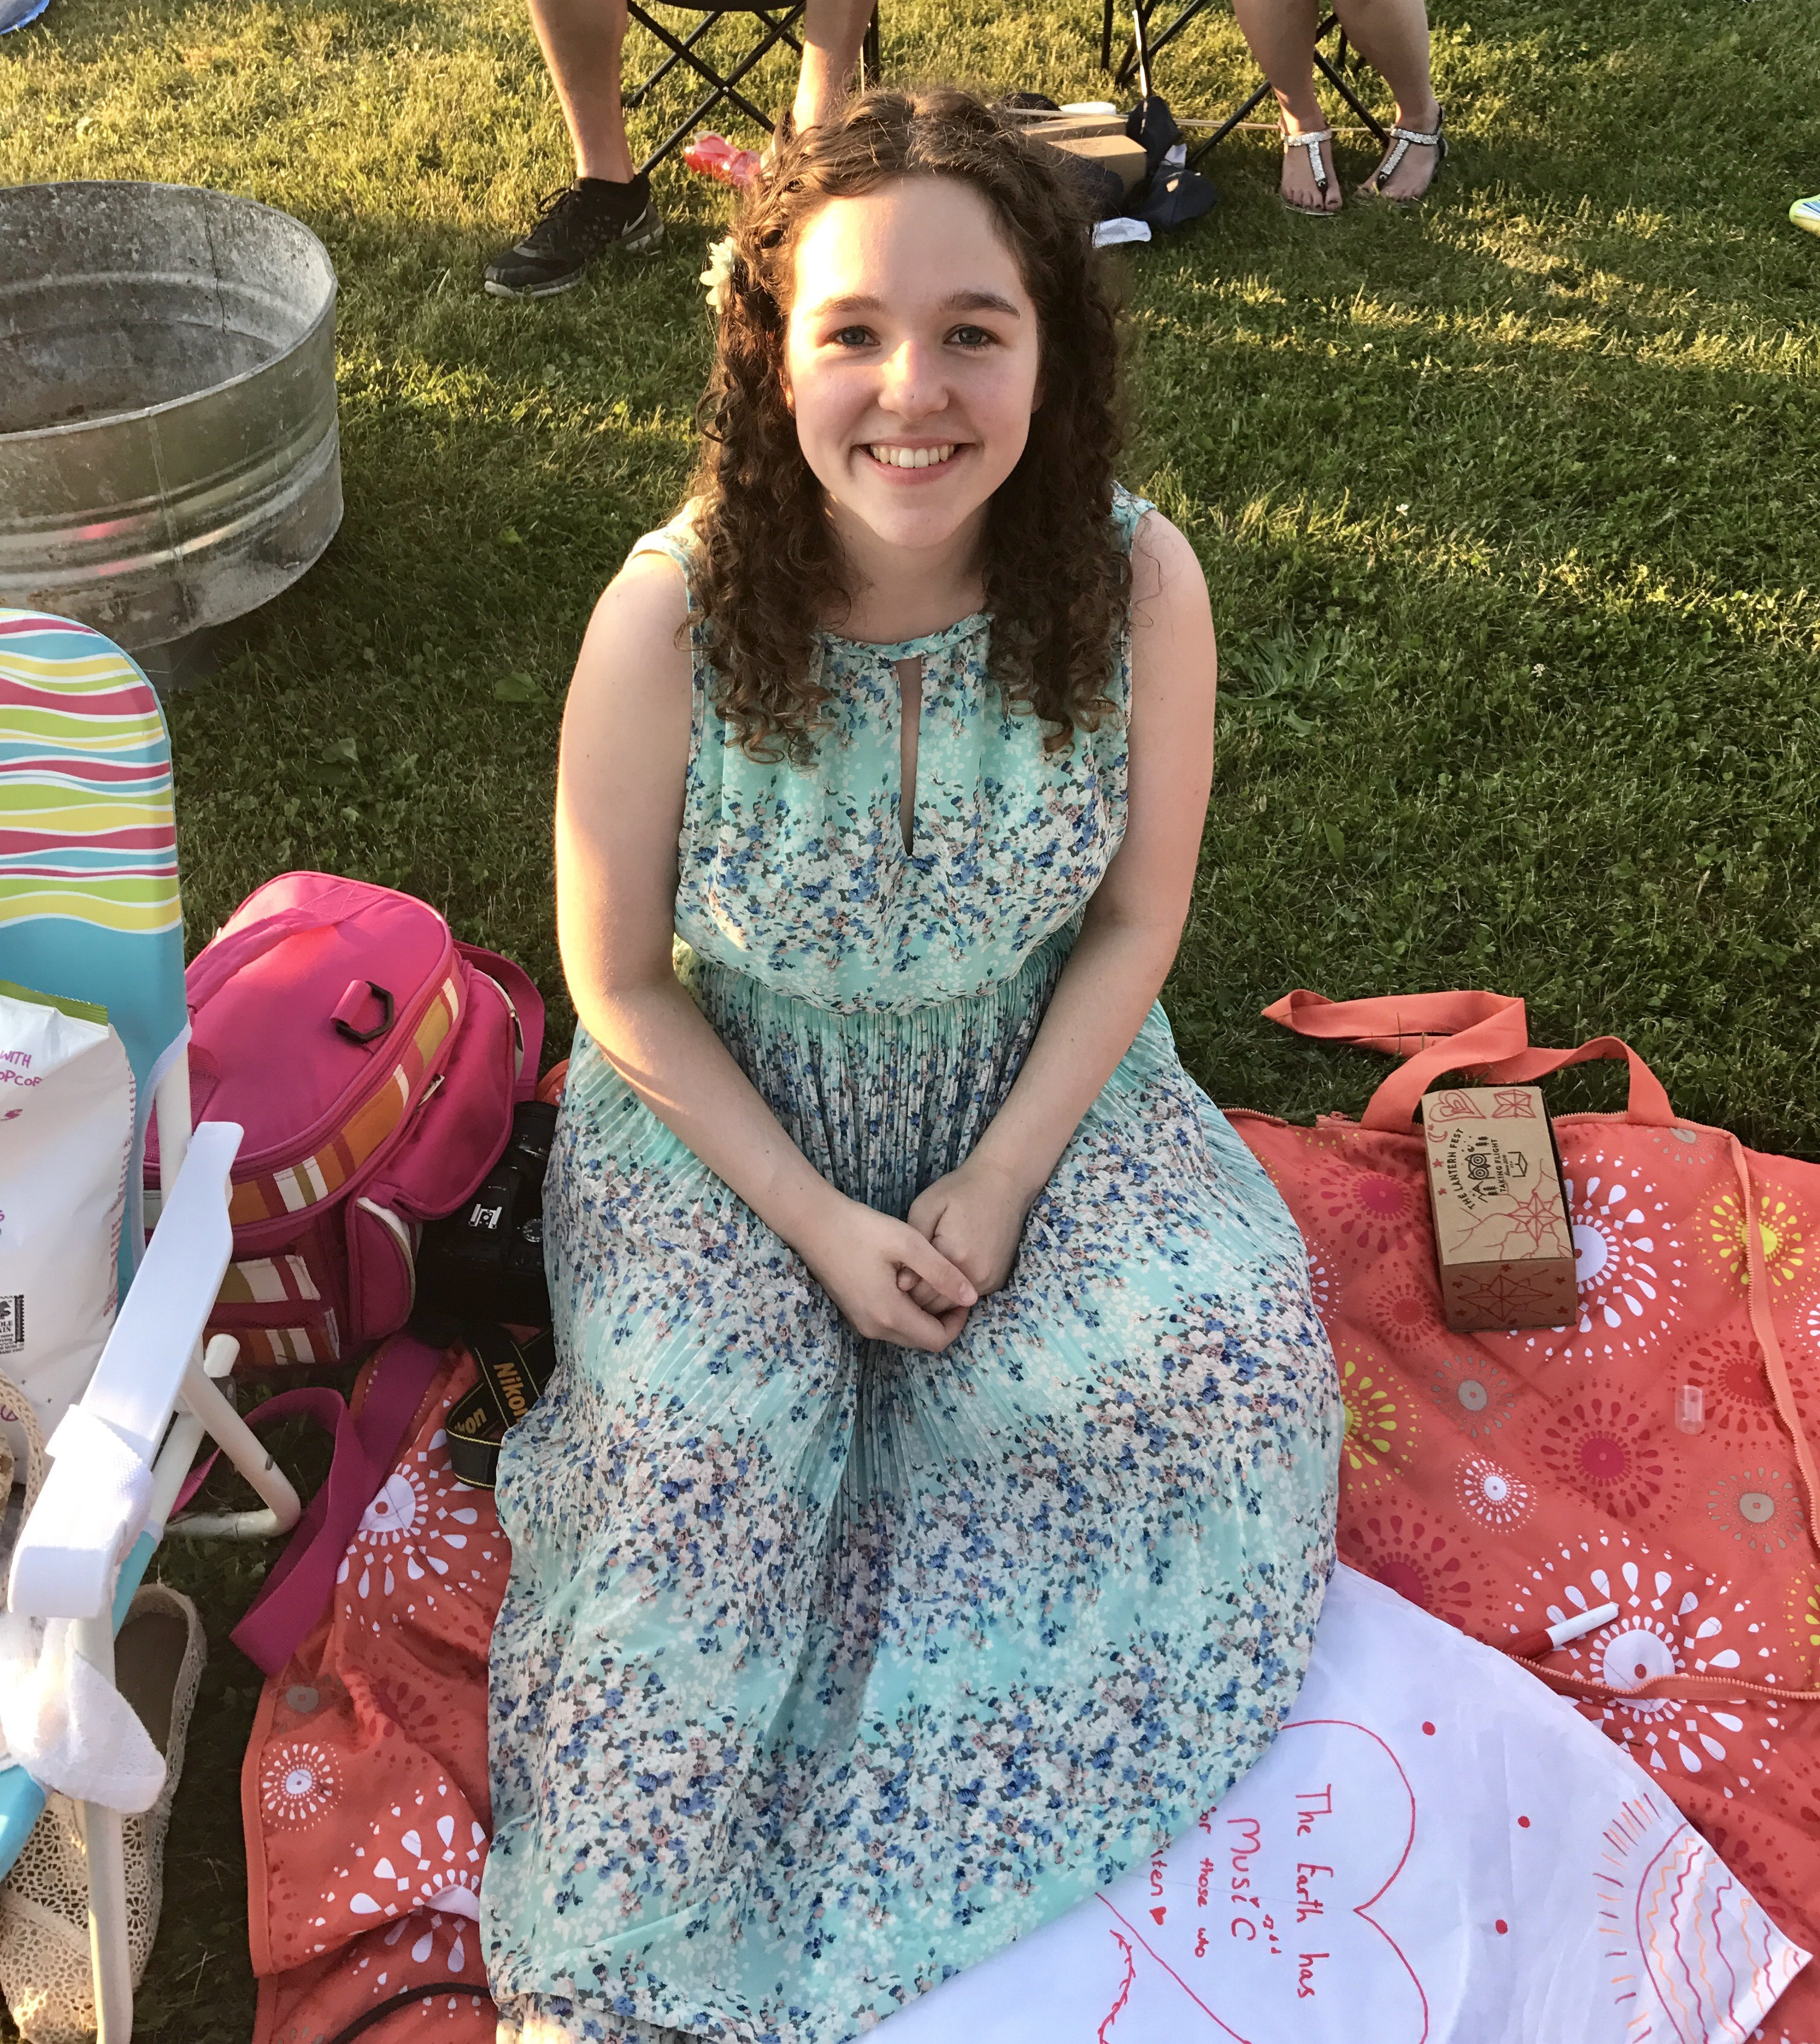 Student Ashley Myers relaxes on a picnic blanket.